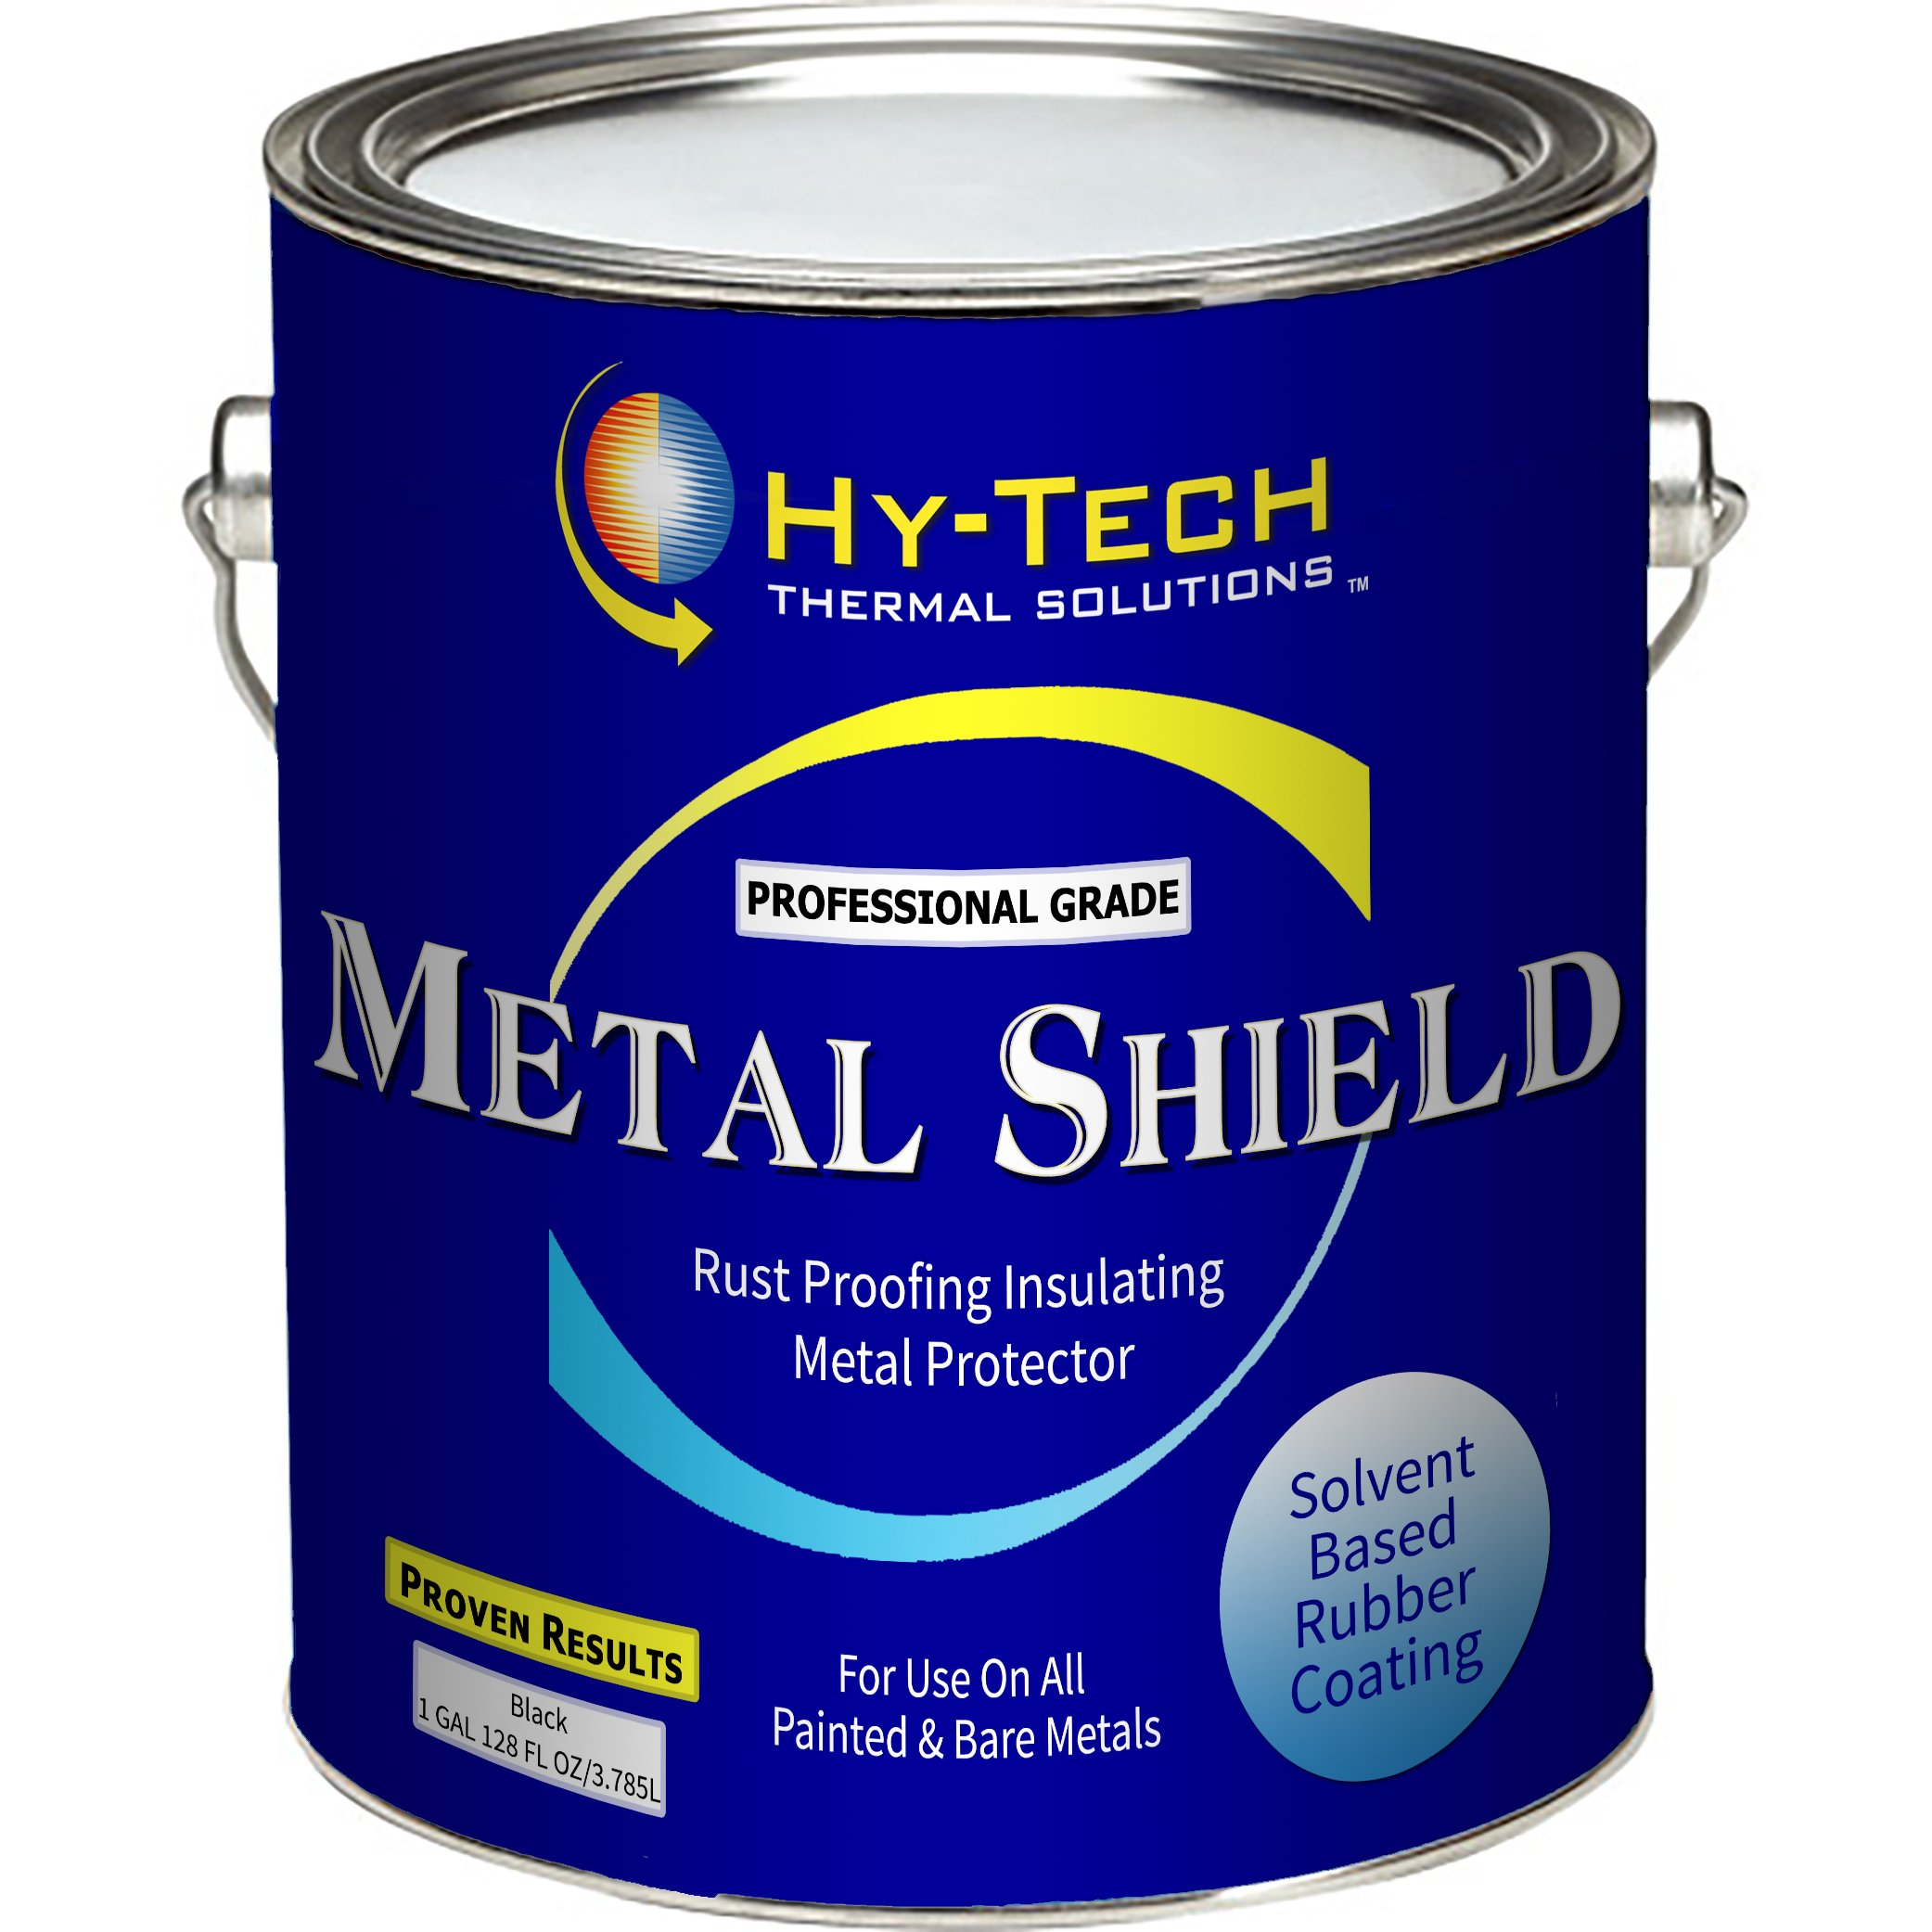 Hy-Tech Thermal Solutions Metal Shield - Automotive Undercoating - 1 Gallon